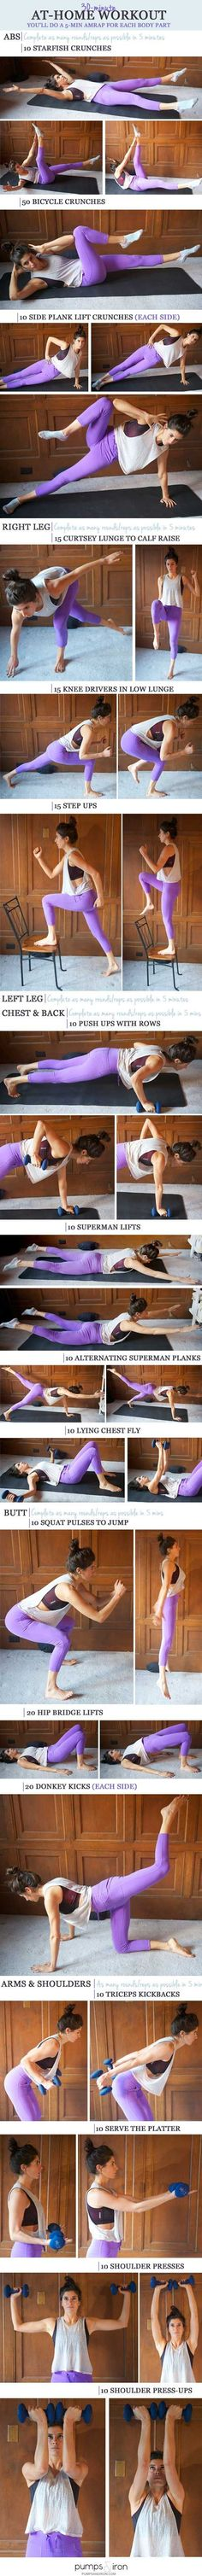 Beauty and Fitness with Marry: 30-Minute Total Body At-Home Workout ...